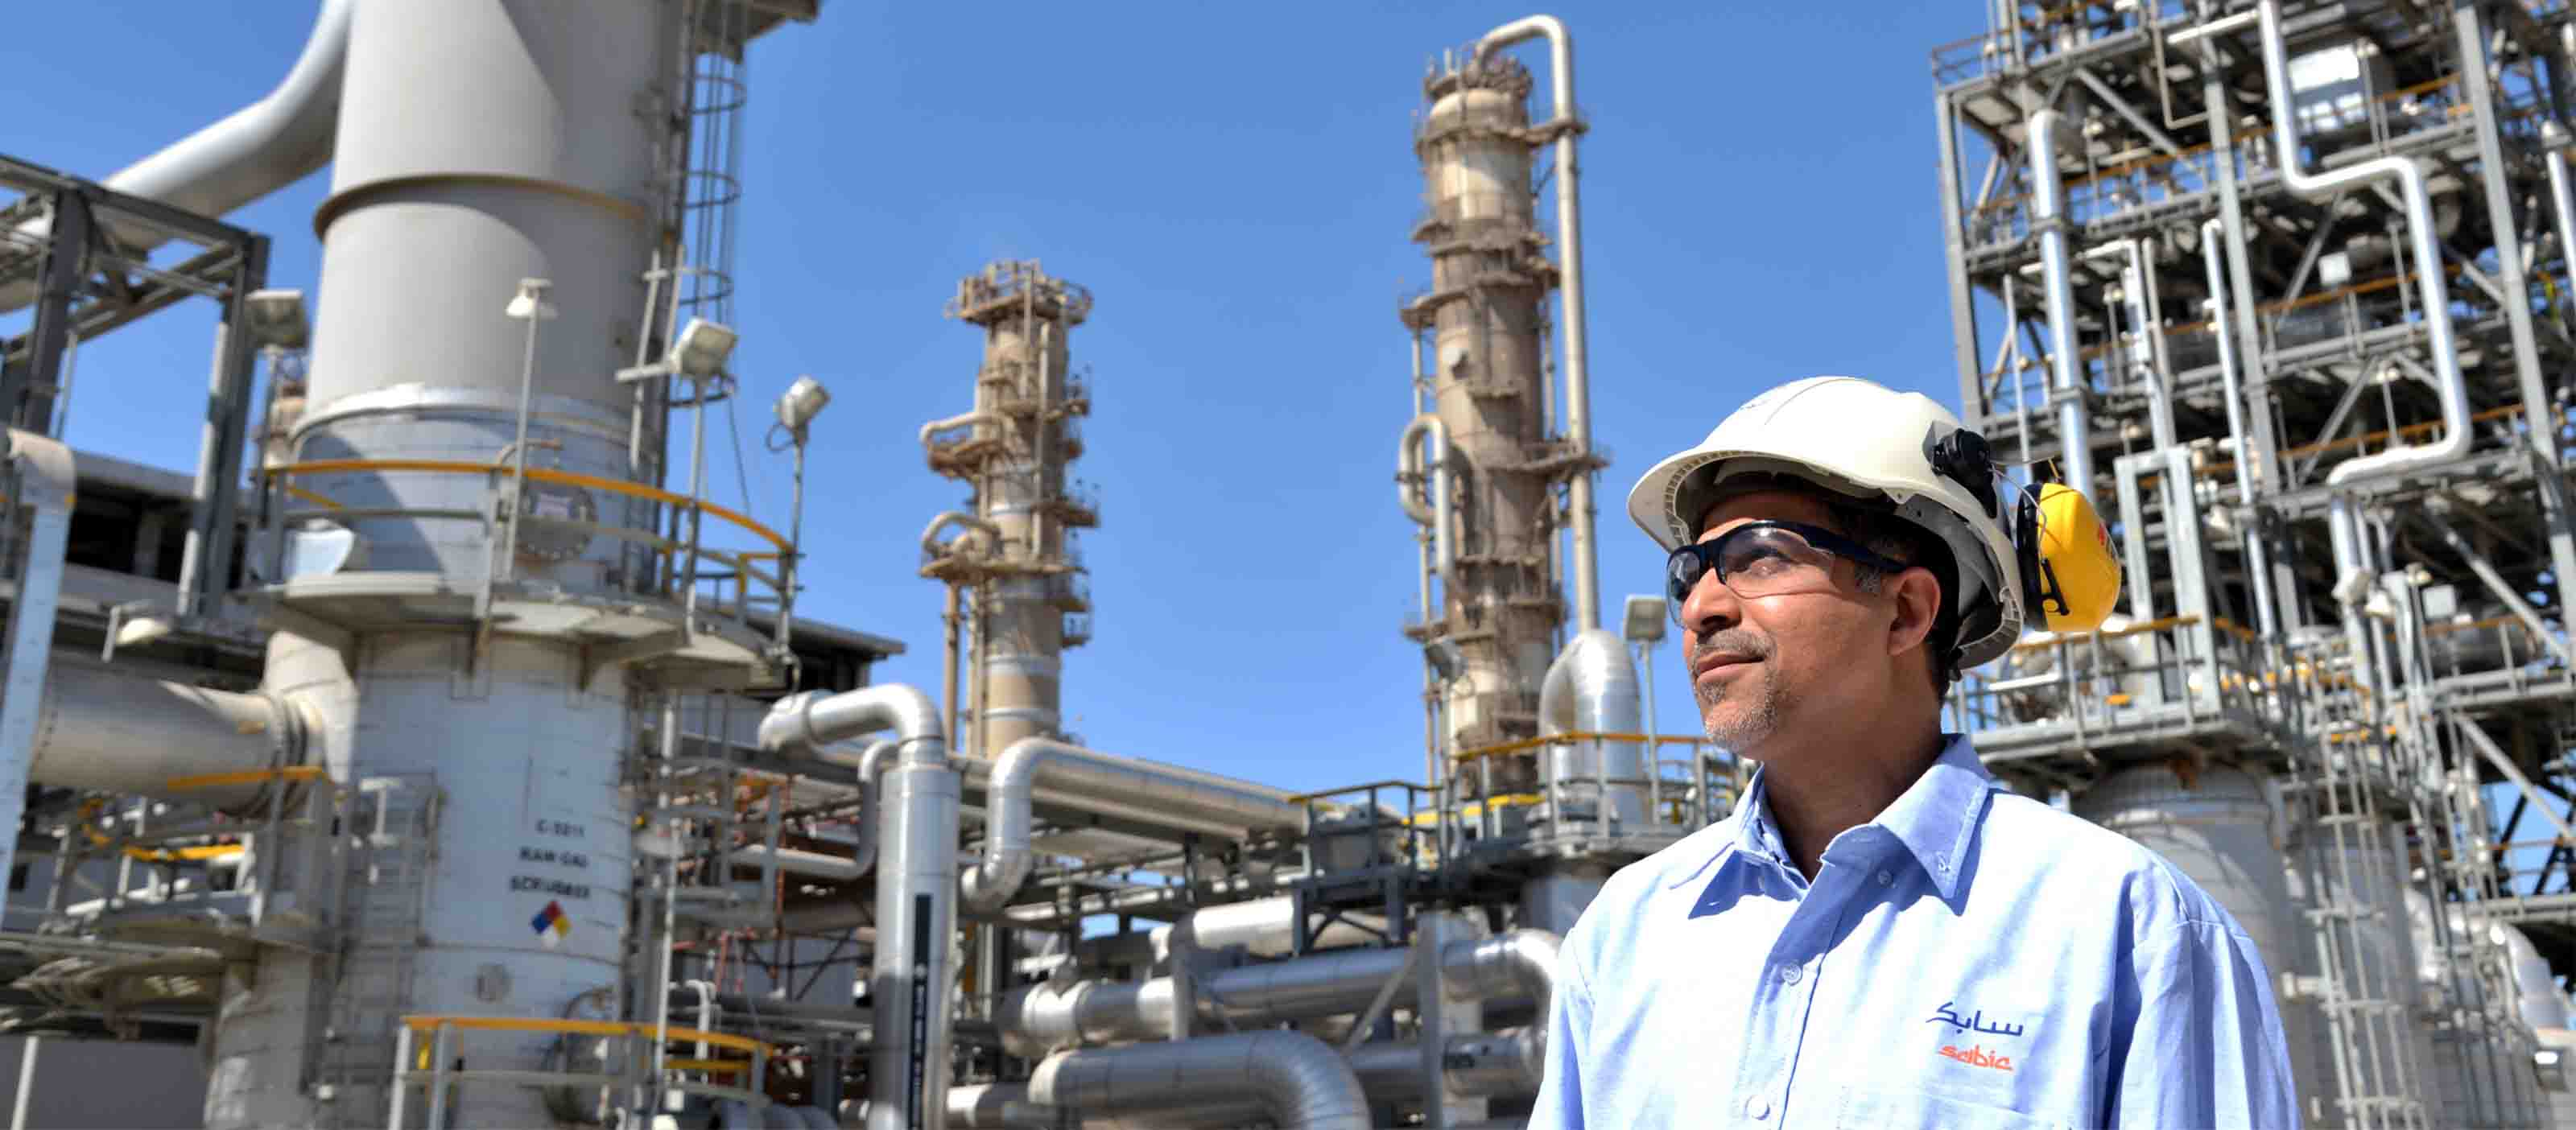 Assisting SABIC in Oil & Gas with APM software from GE Digital